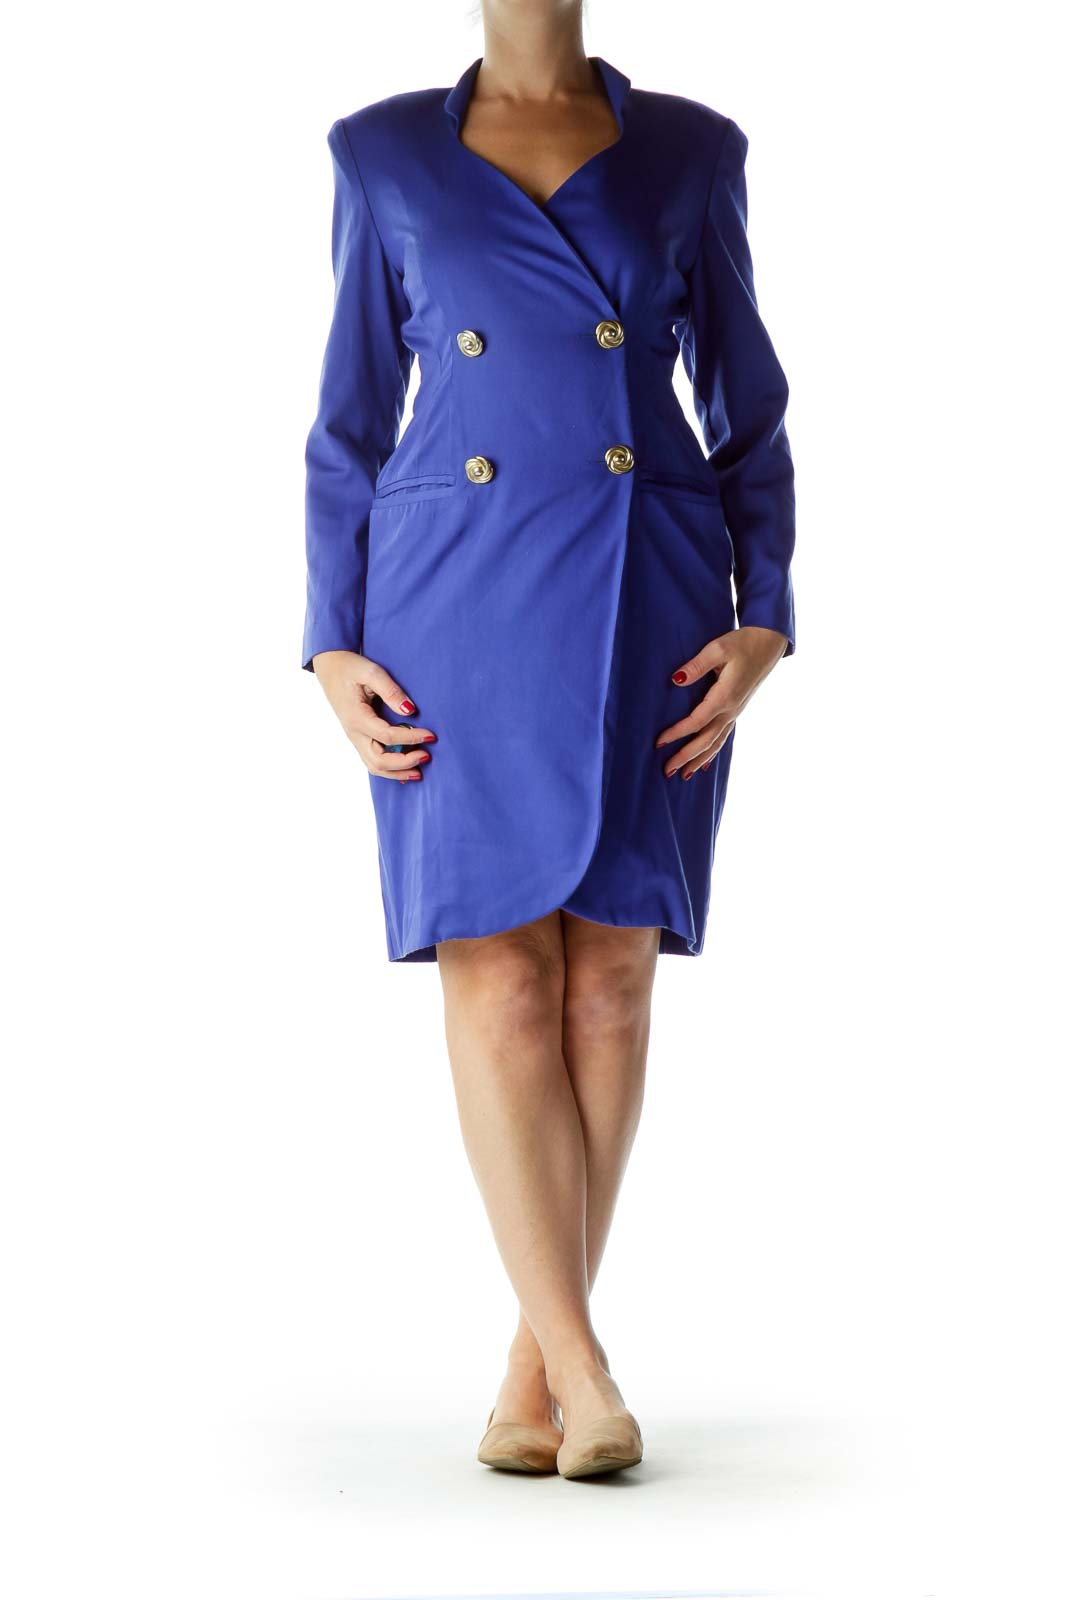 Blue Double-Breasted Vintage Work Dress